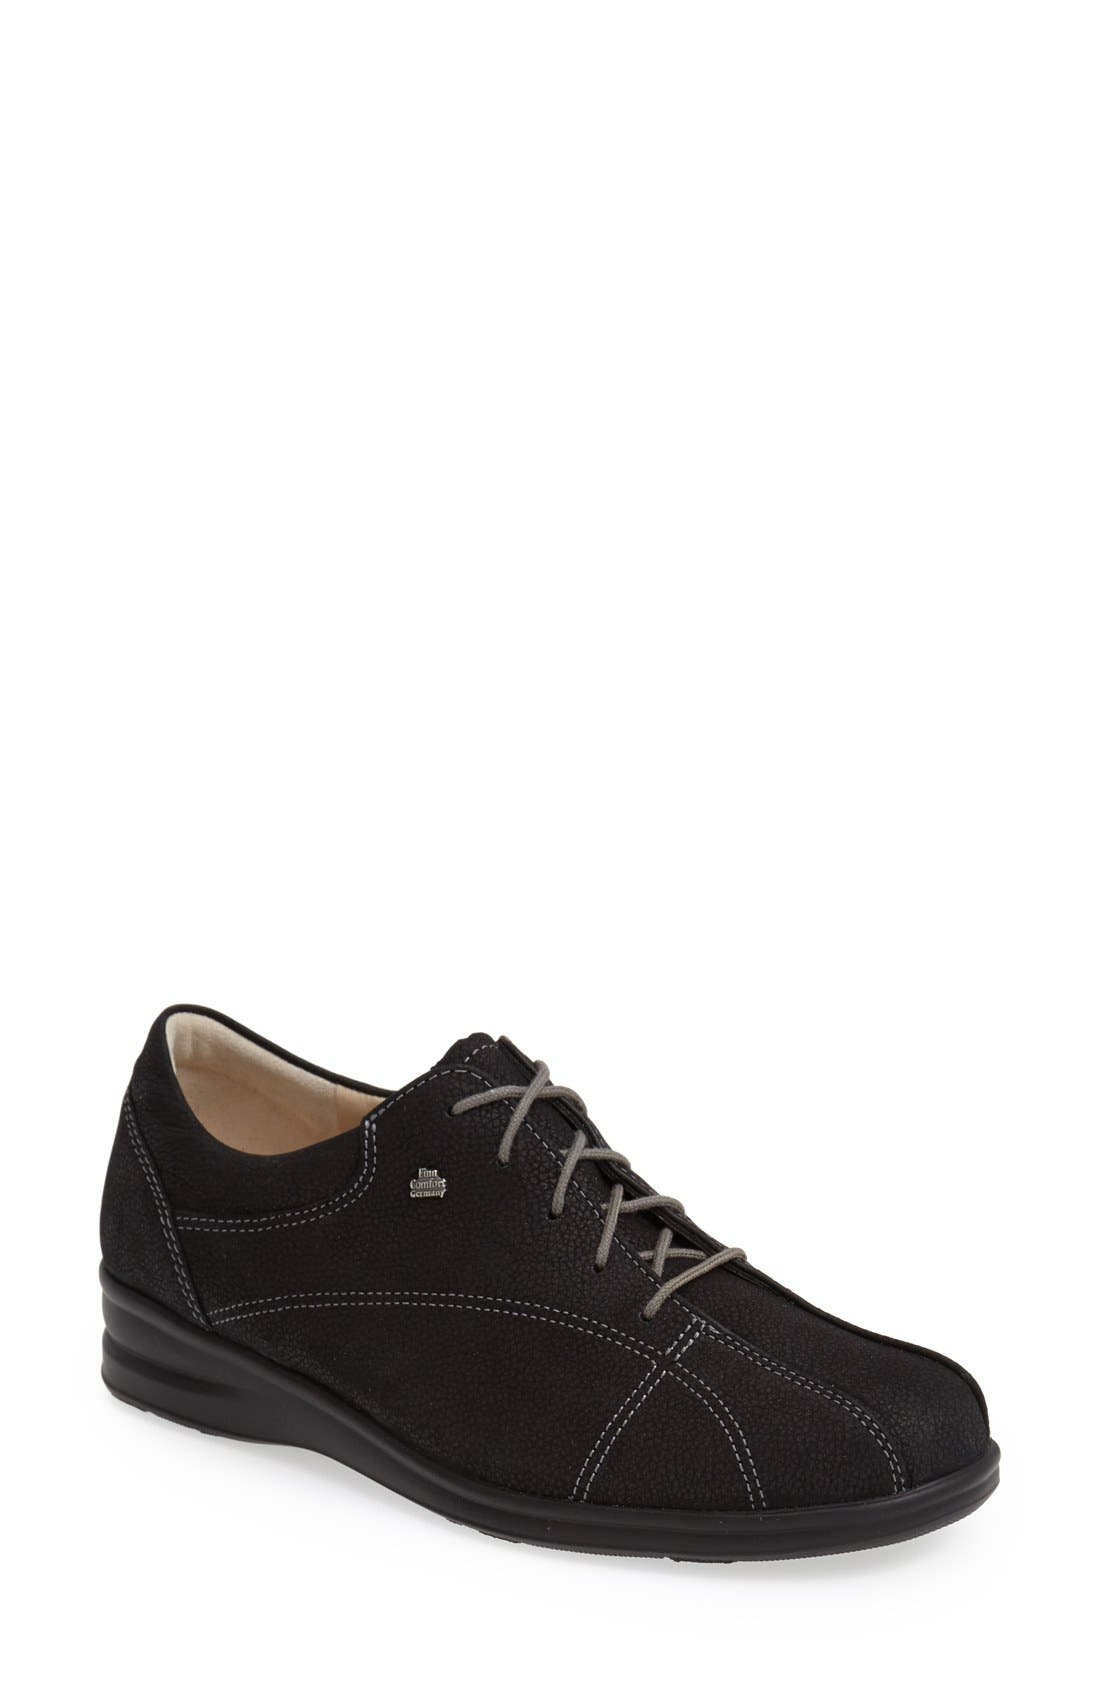 'Ariano' Leather Sneaker,                         Main,                         color, Black